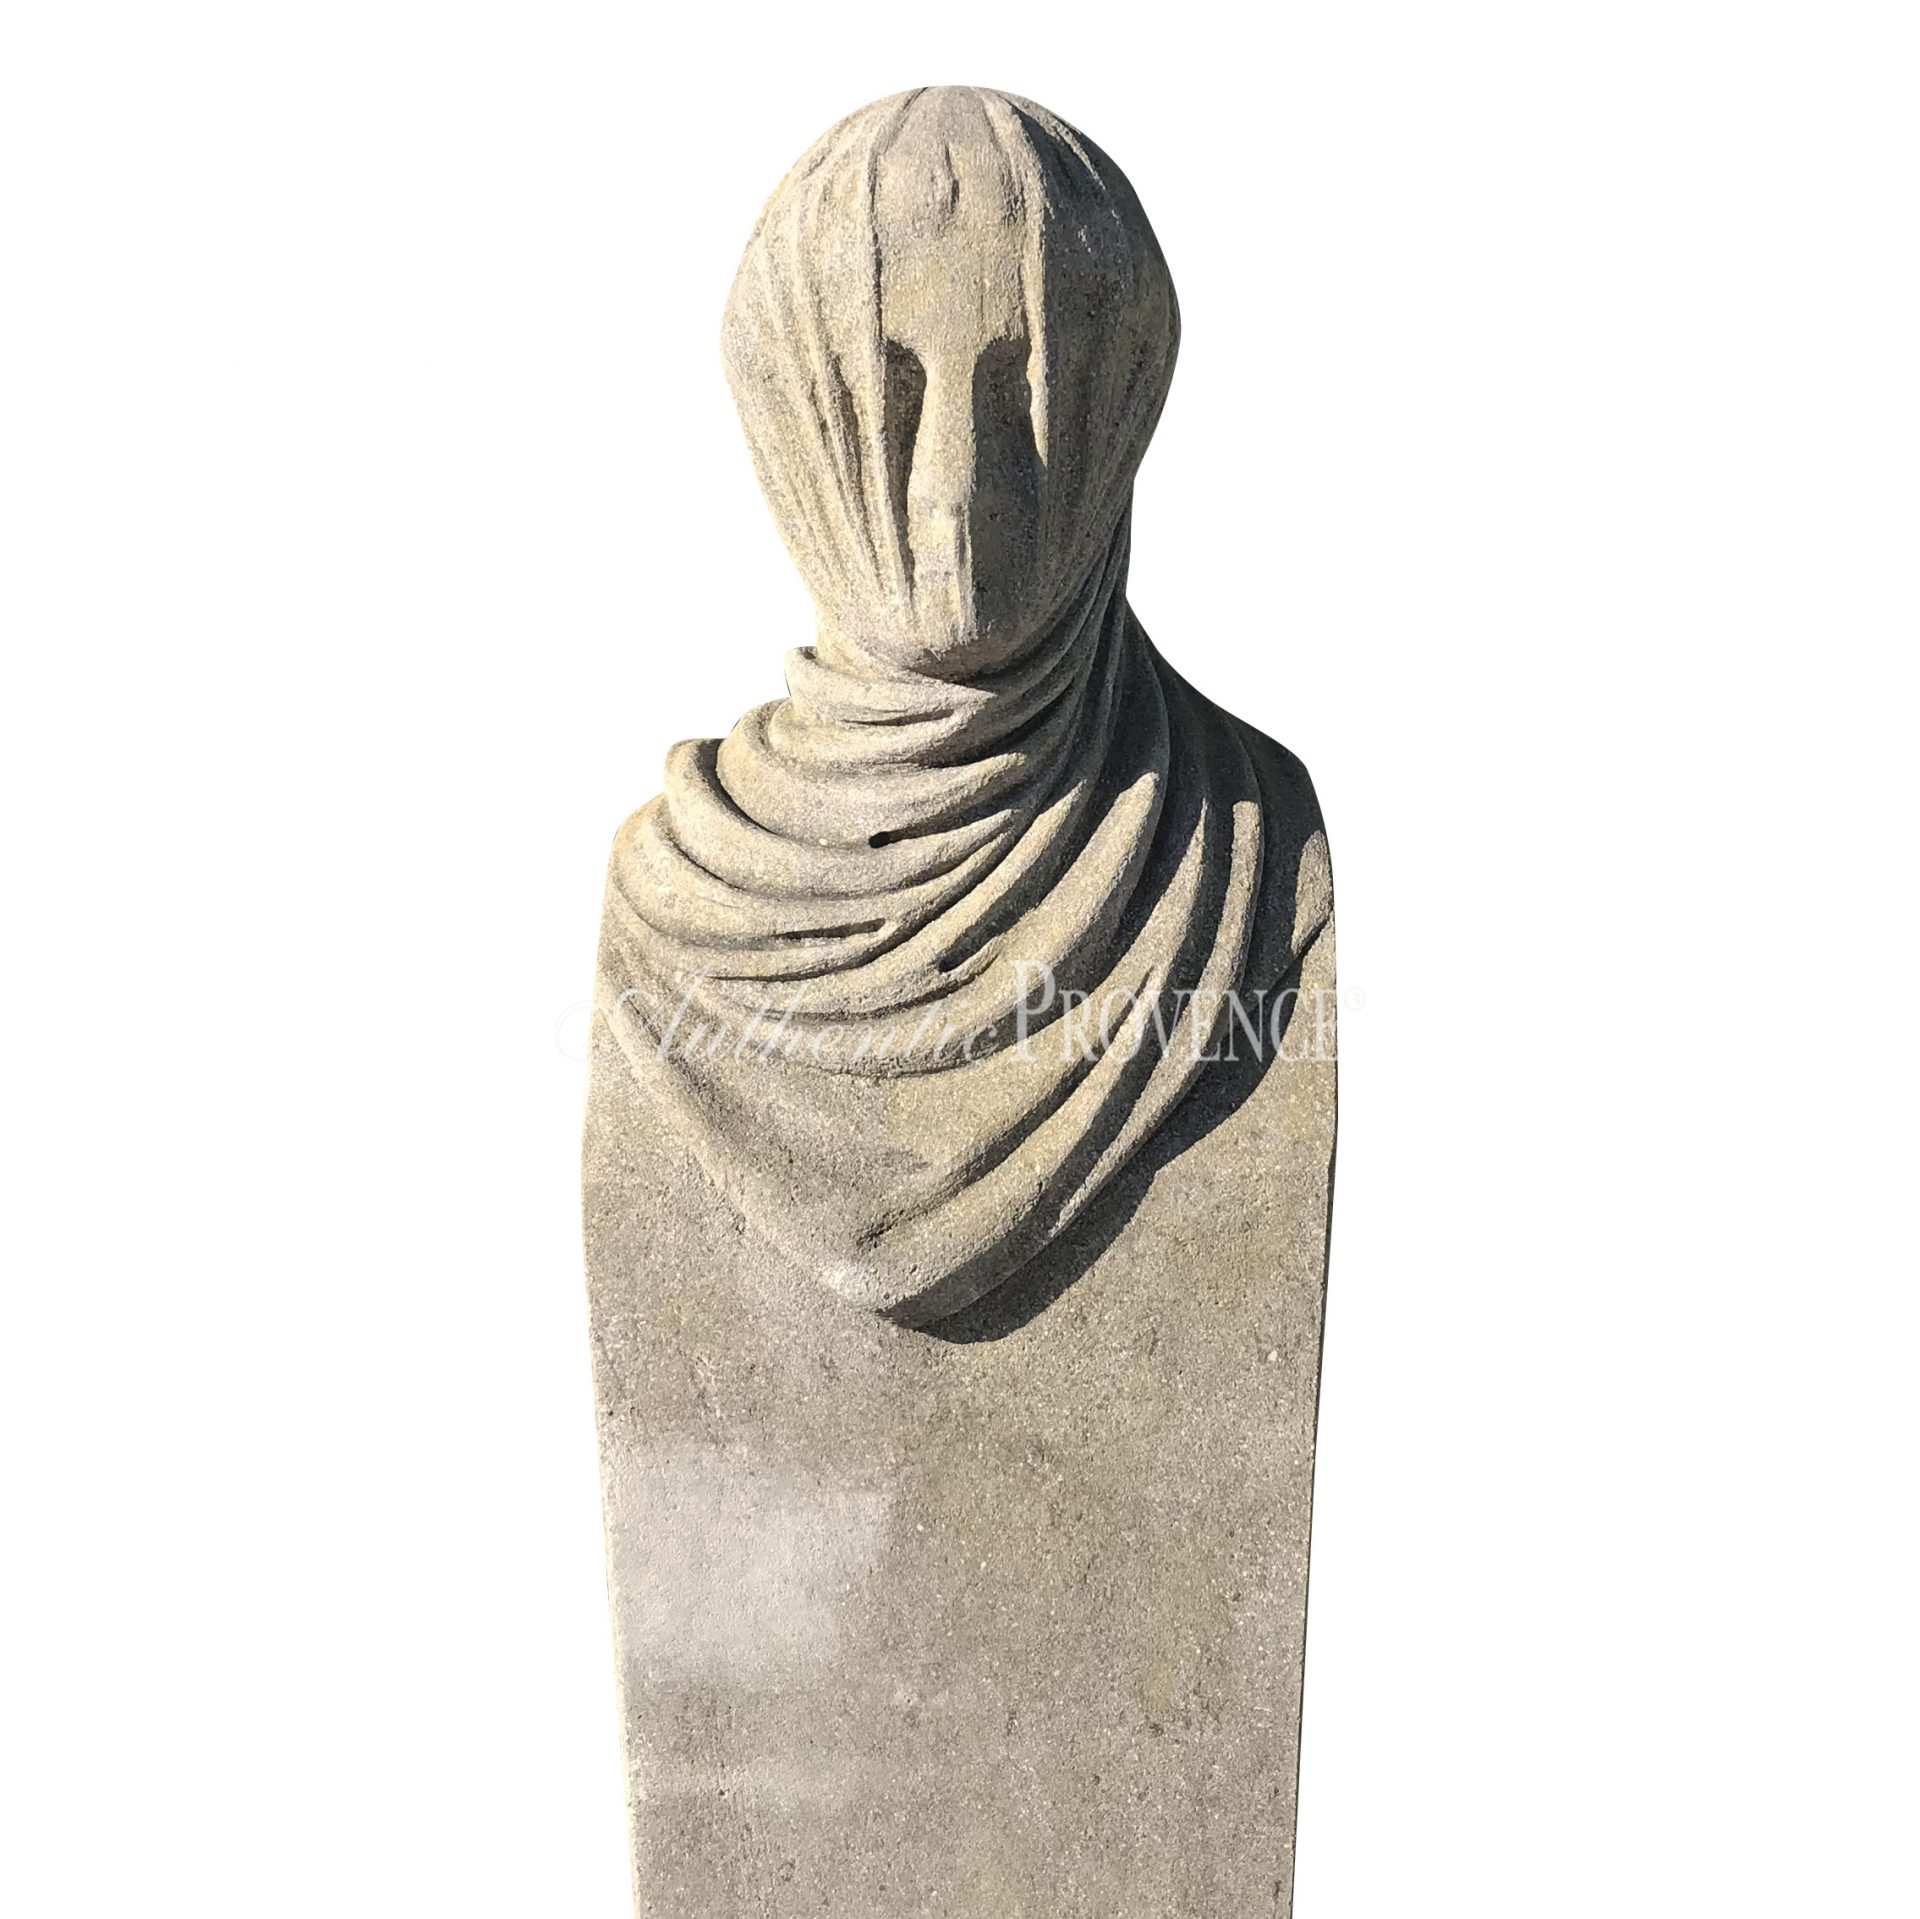 Statue with Hidden Face